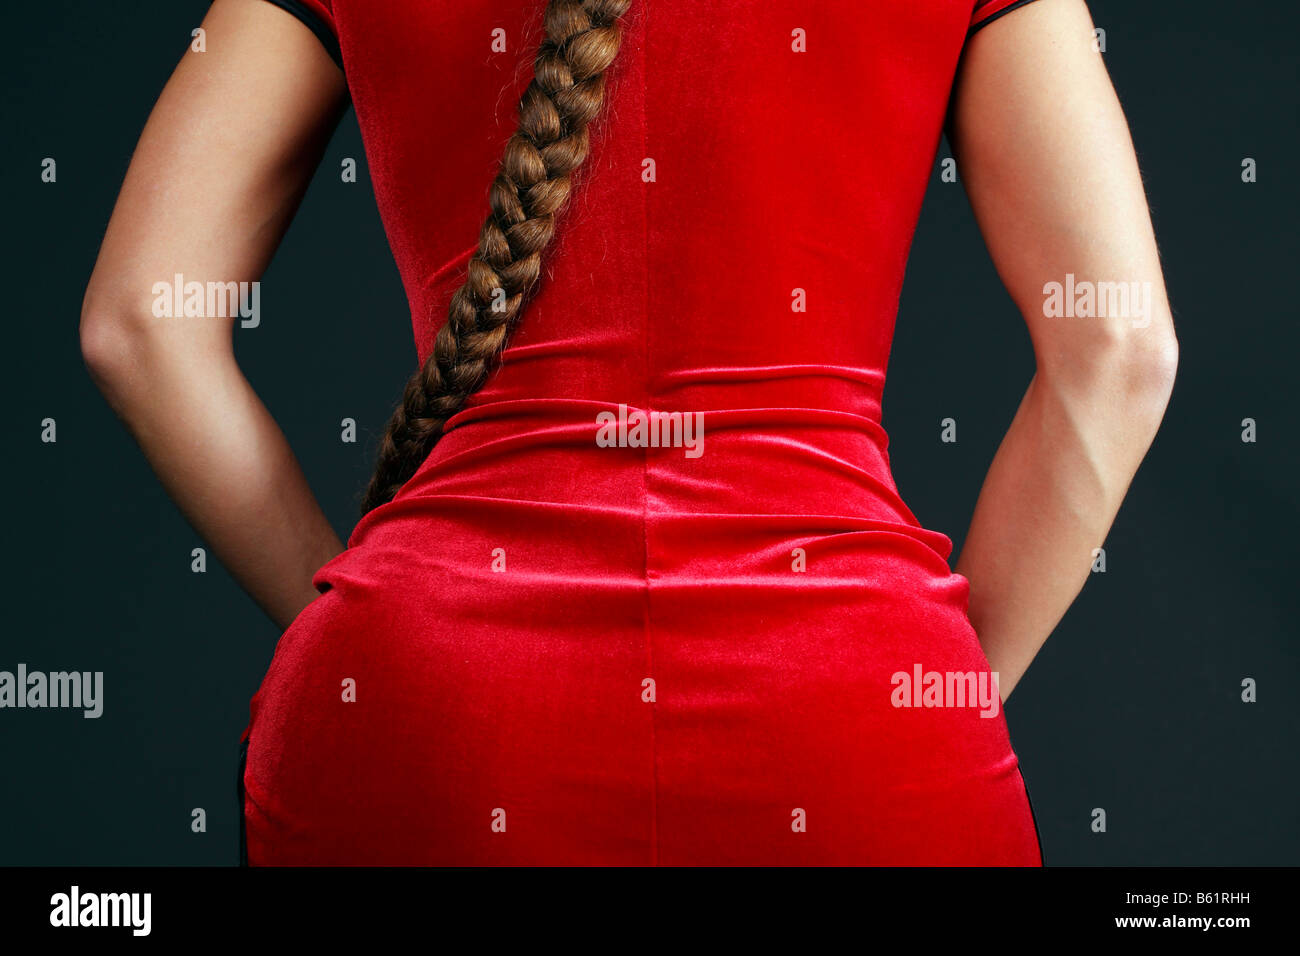 Woman wearing a red velvet dress and pony tail from behind, partial view - Stock Image